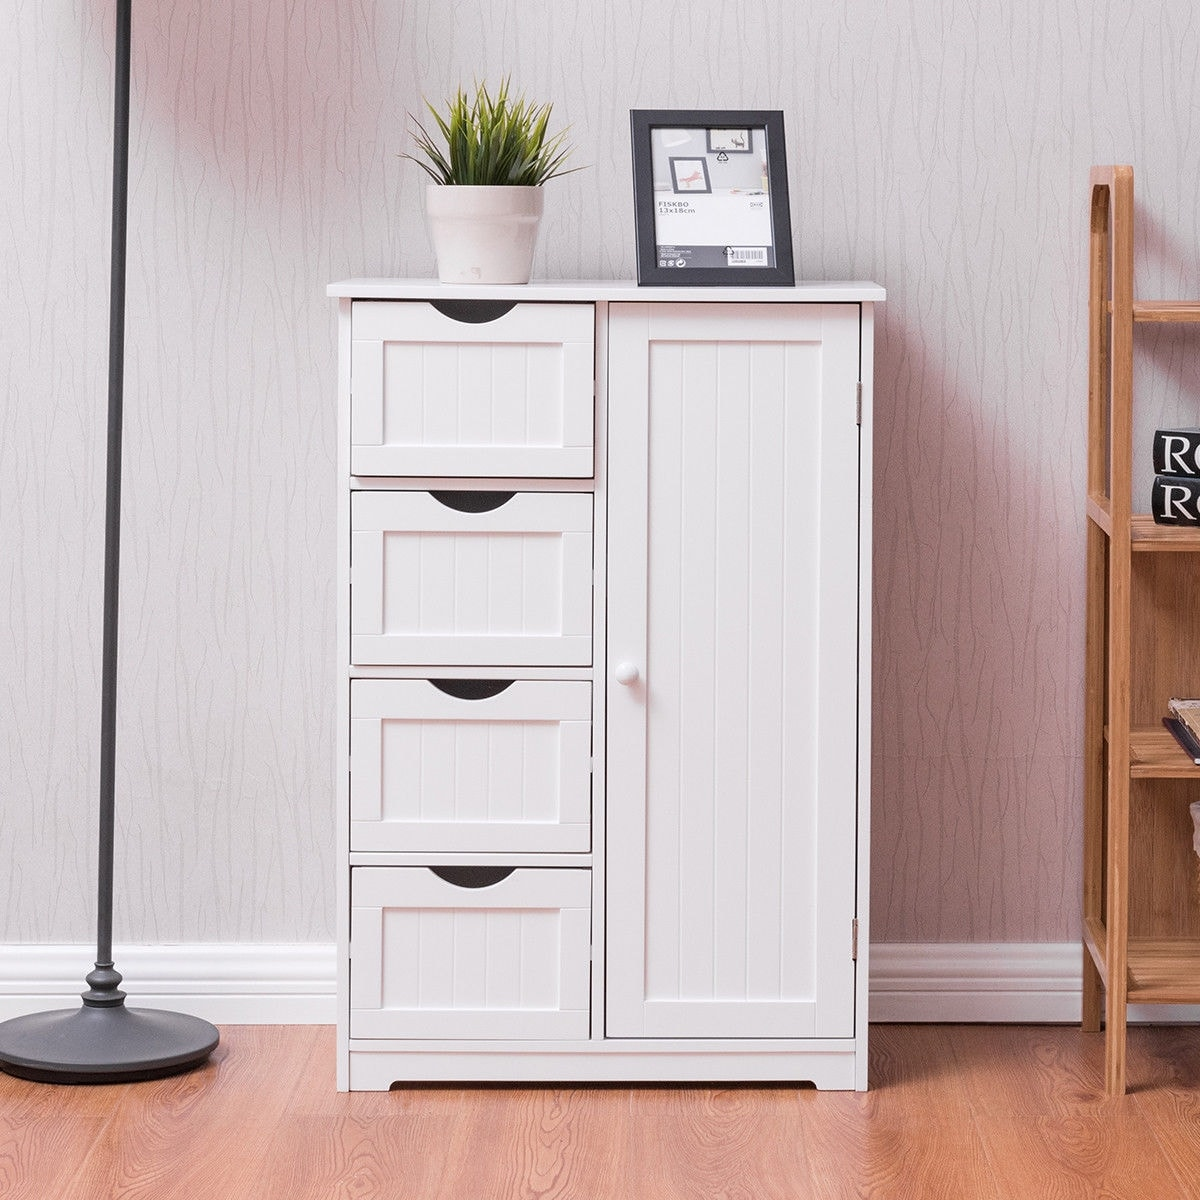 Cupboard Drawers Costway Wooden 4 Drawer Bathroom Cabinet Storage Cupboard 2 Shelves Free Standing White